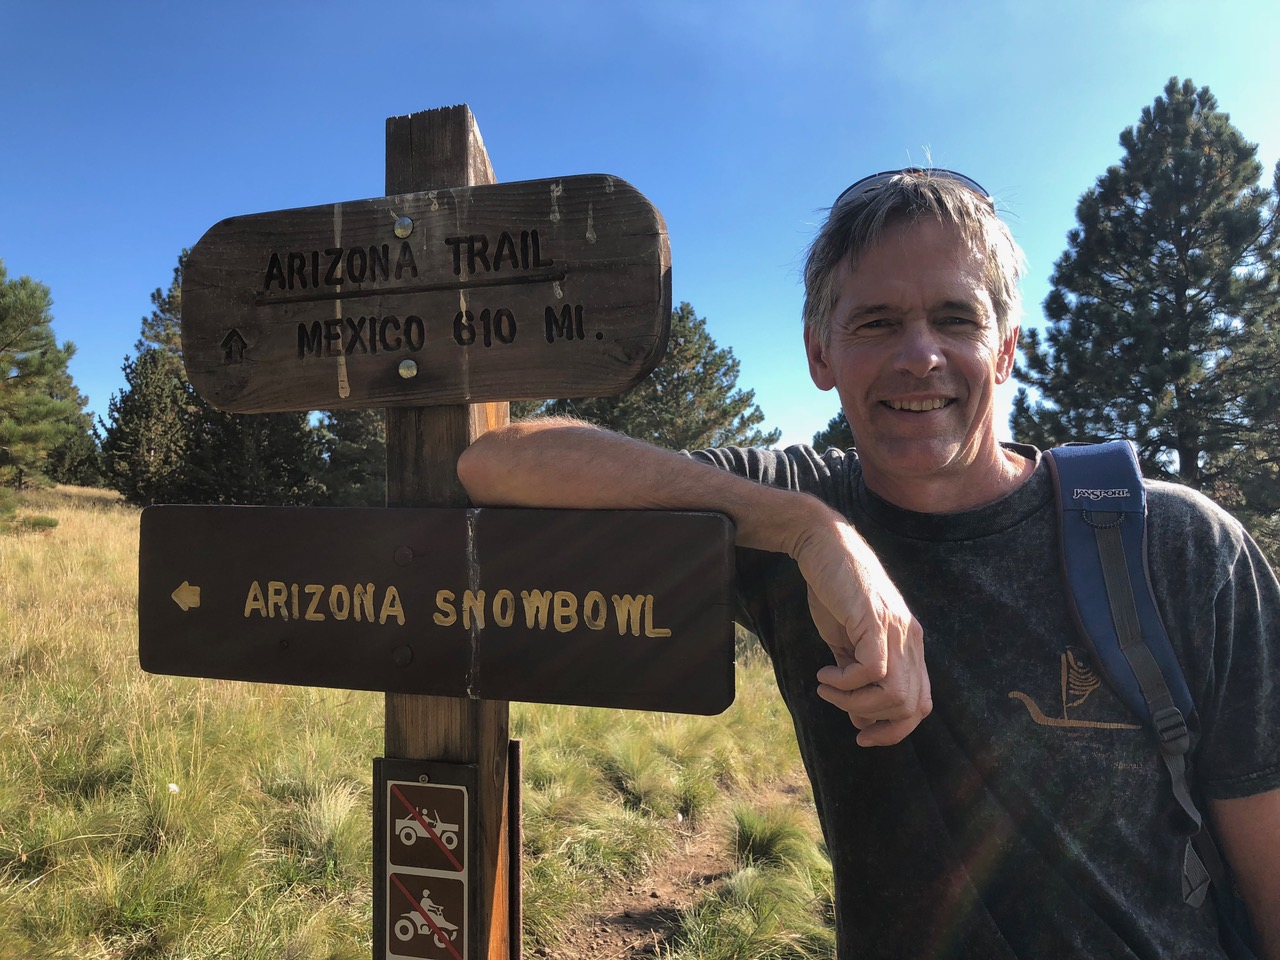 Scientist next to hiking trail sign